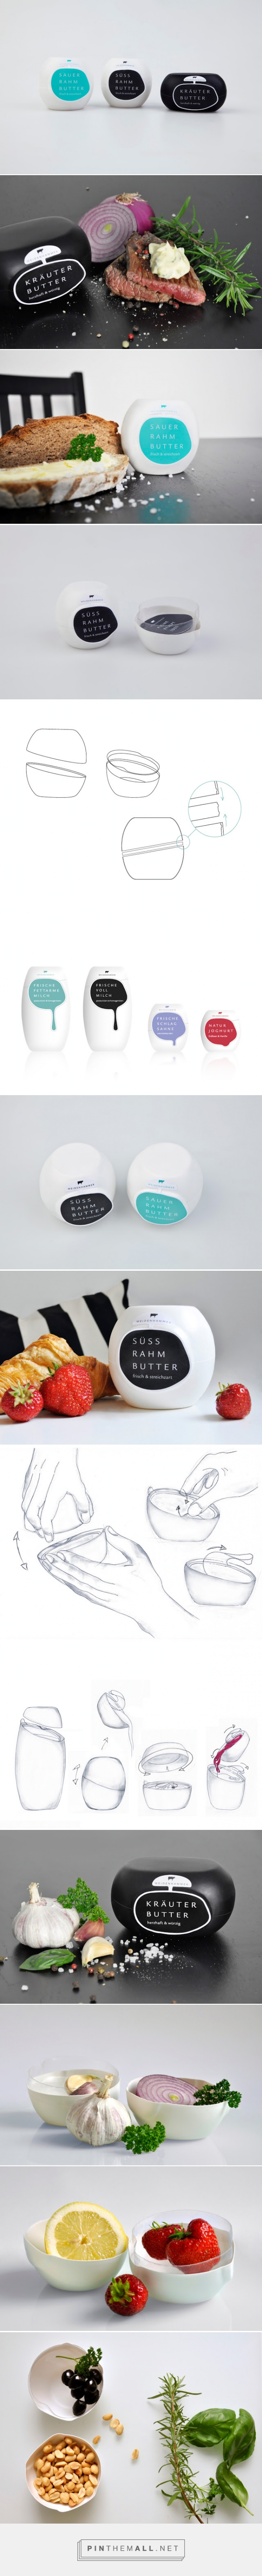 The Butterbowl #Butter #Student #Concept #Packaging designed by Alexandra Matthies & Nicole Plock - http://www.packagingoftheworld.com/2015/07/the-butterbowl-student-project.html